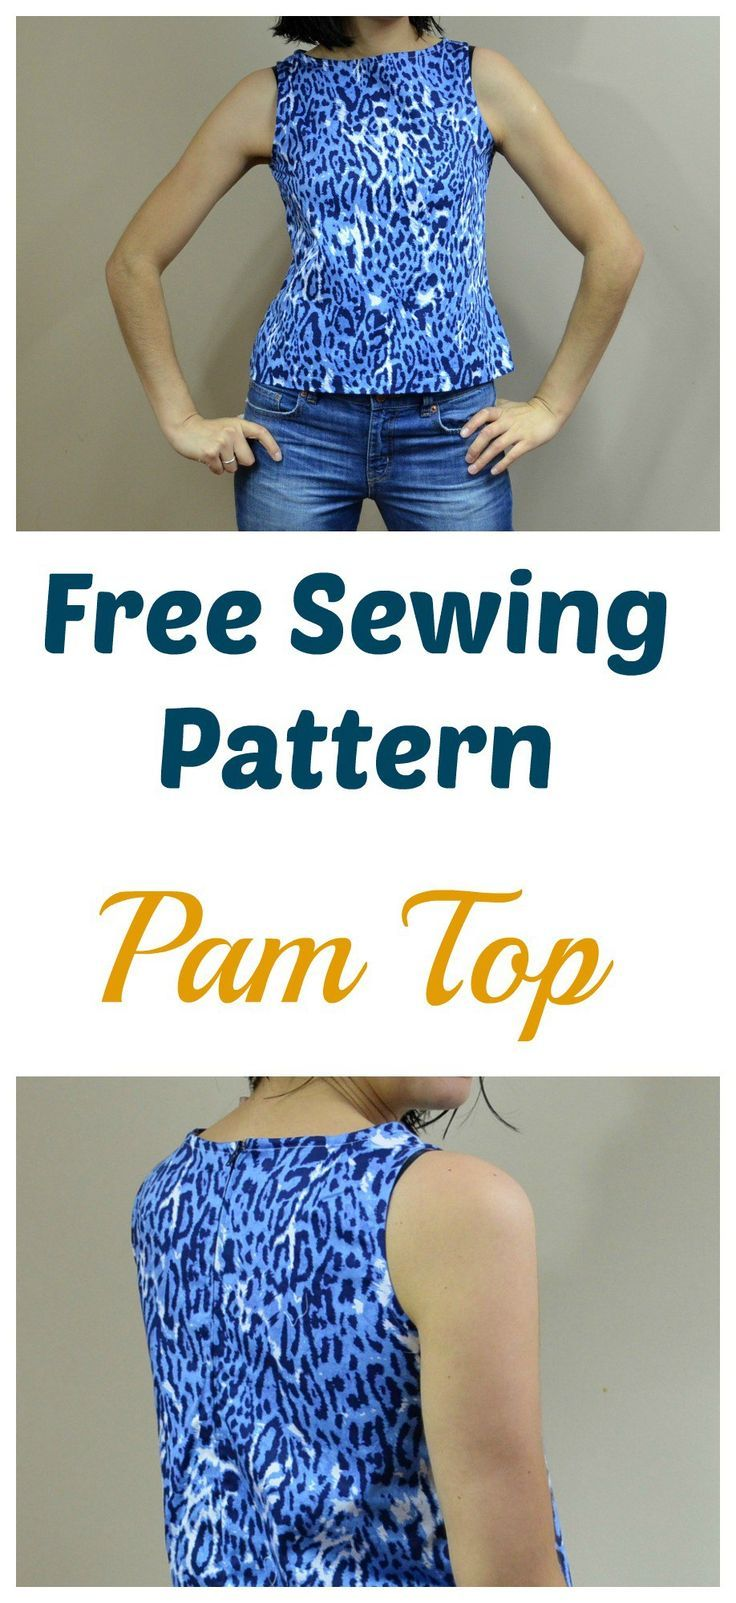 Free sewing pattern pam top on the cutting floor printable pdf free sewing pattern pam top on the cutting floor printable pdf sewing patterns and tutorials for women jeuxipadfo Gallery